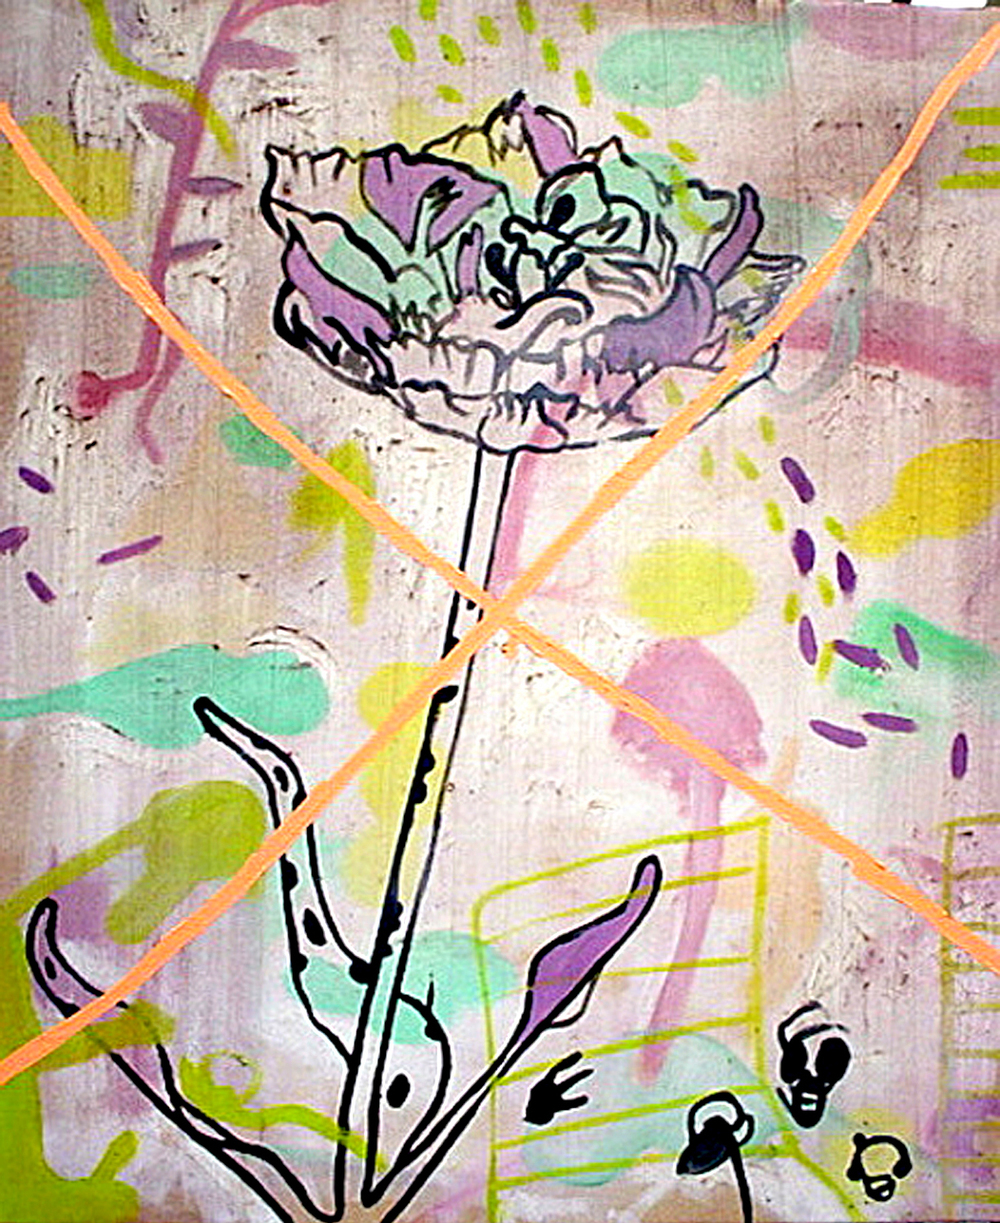 "White Tulip with Peach X    Oil and Beeswax on Canvas 34"" x 28""  2003"